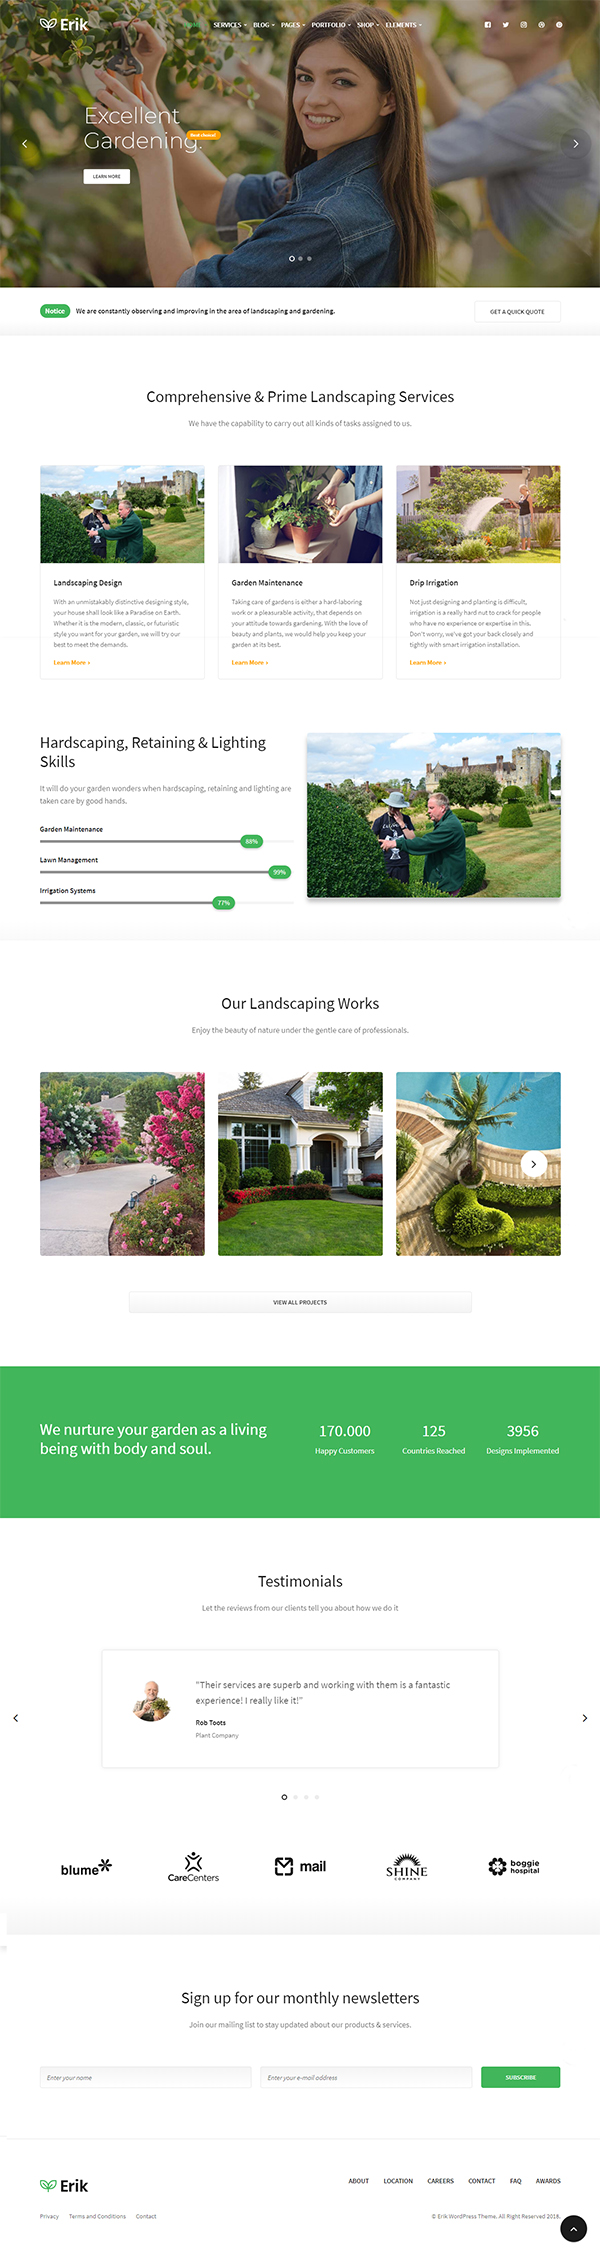 Erik - Refined WordPress Theme for Gardening & Landscaping